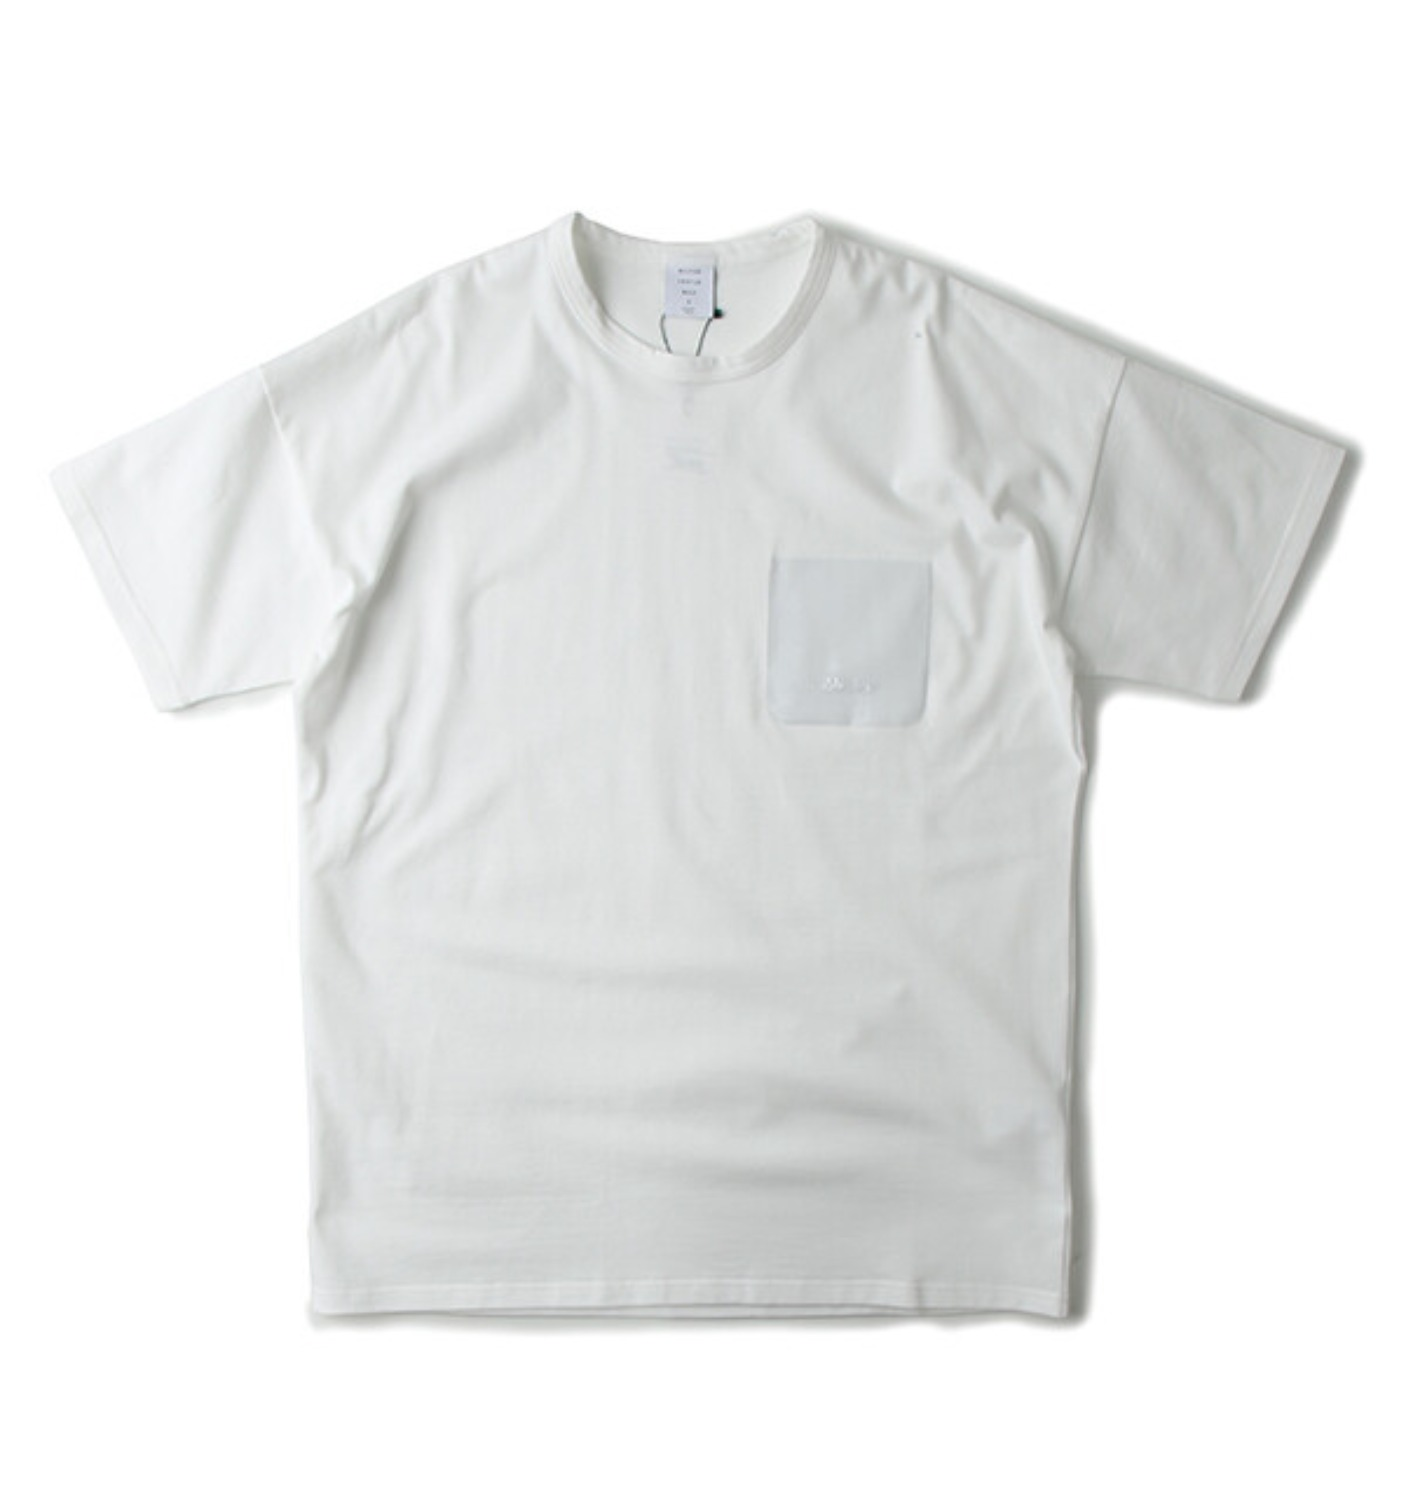 VINYL POCKET MODERN TEE WHITE(MGM-CS02)